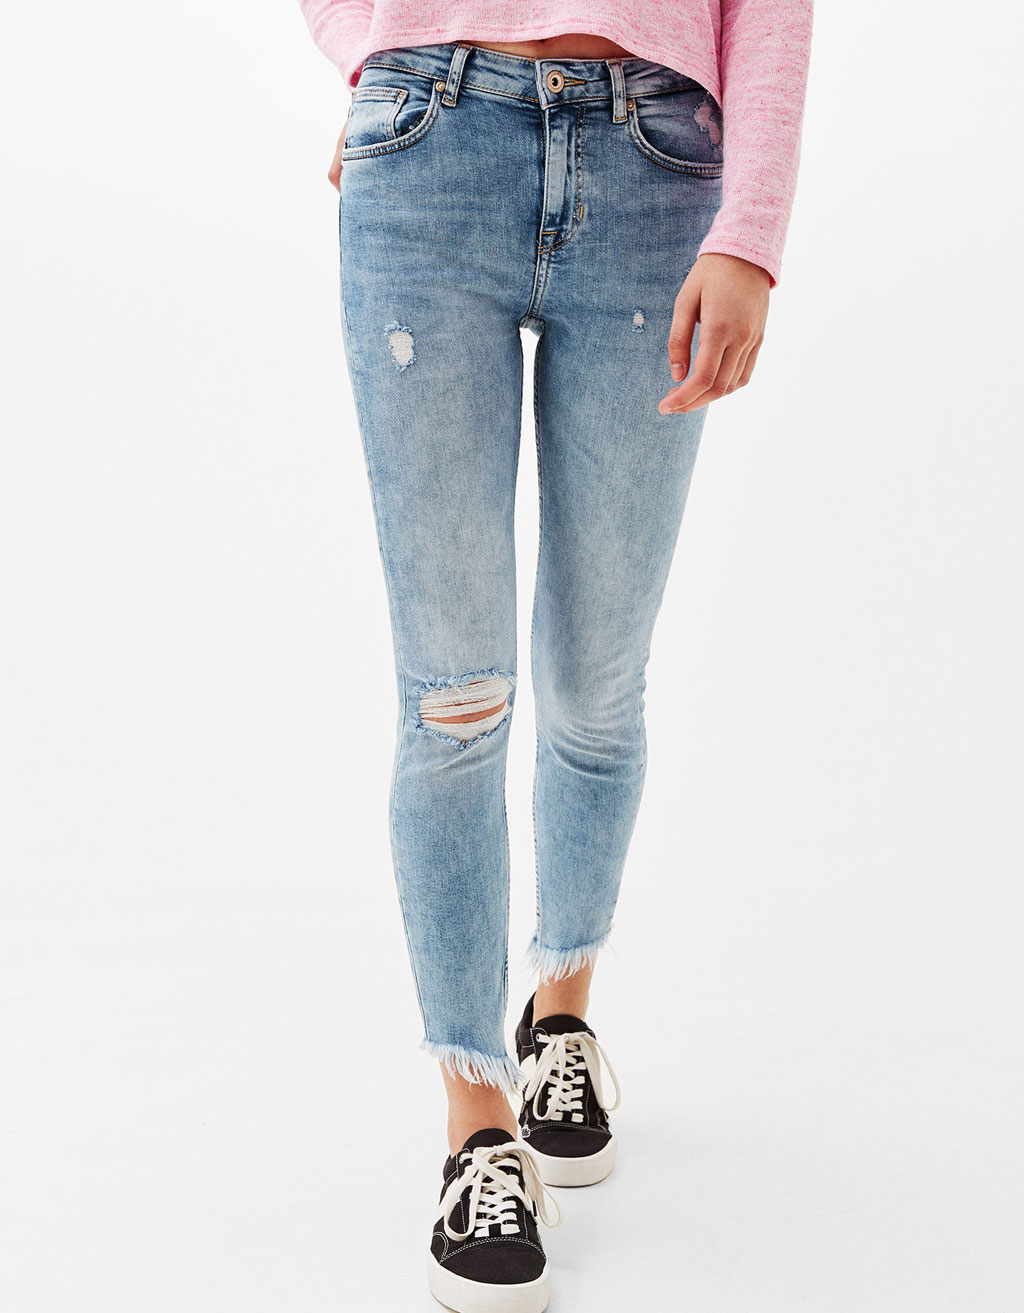 Women's Jeans for Spring Summer 2017 | Bershka